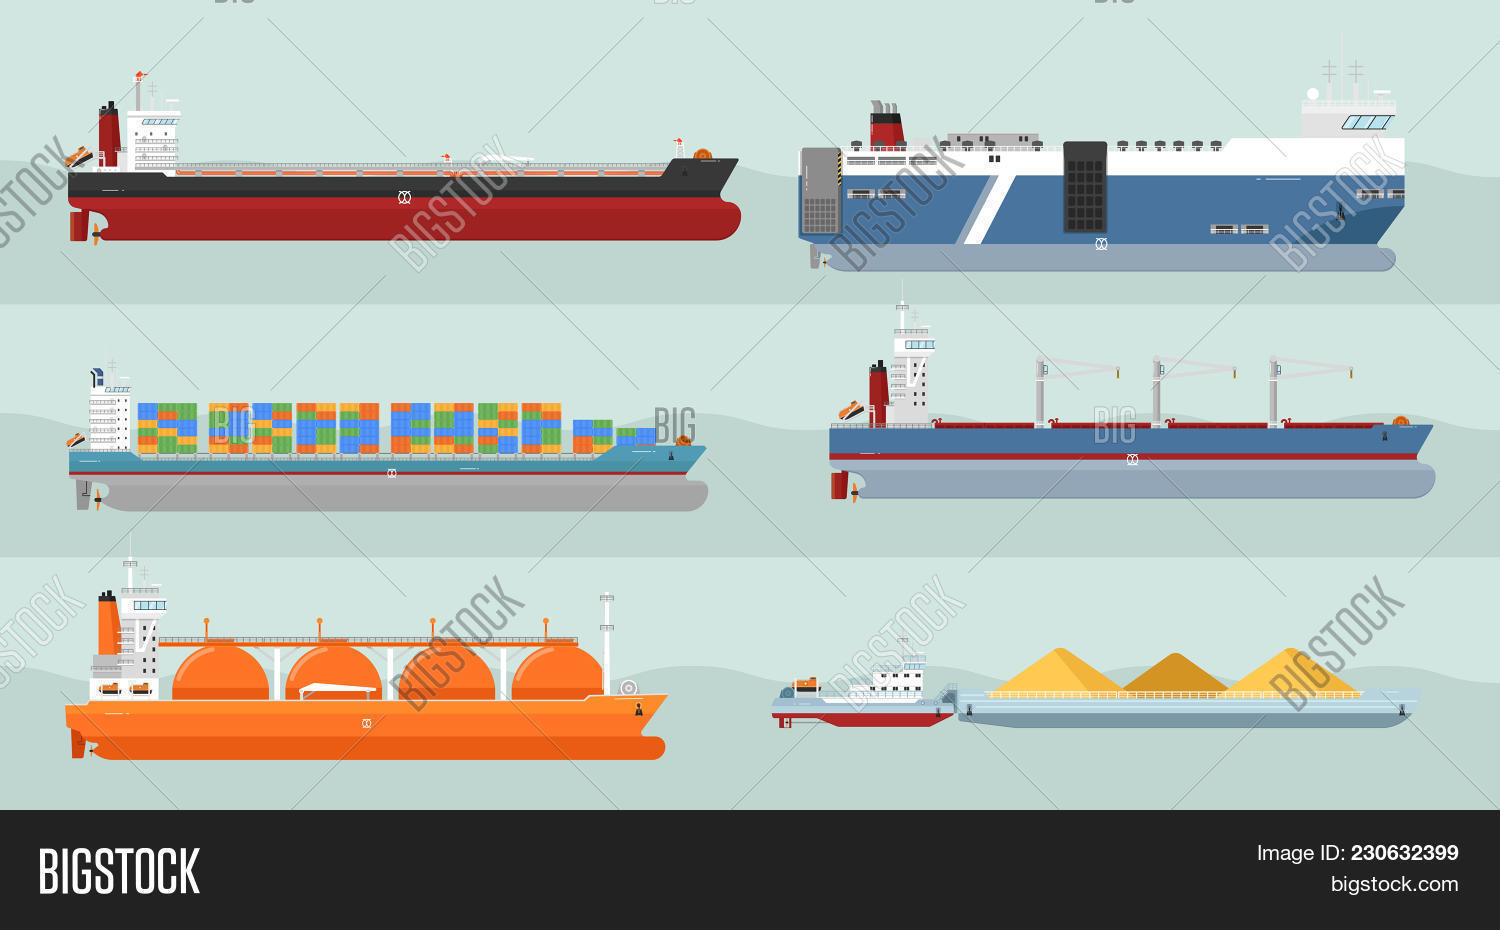 hight resolution of set of cargo ships s flat design ferry container freighter bulk gas carriers tugboat ships illustrations transatlantic carriage by merchant navy